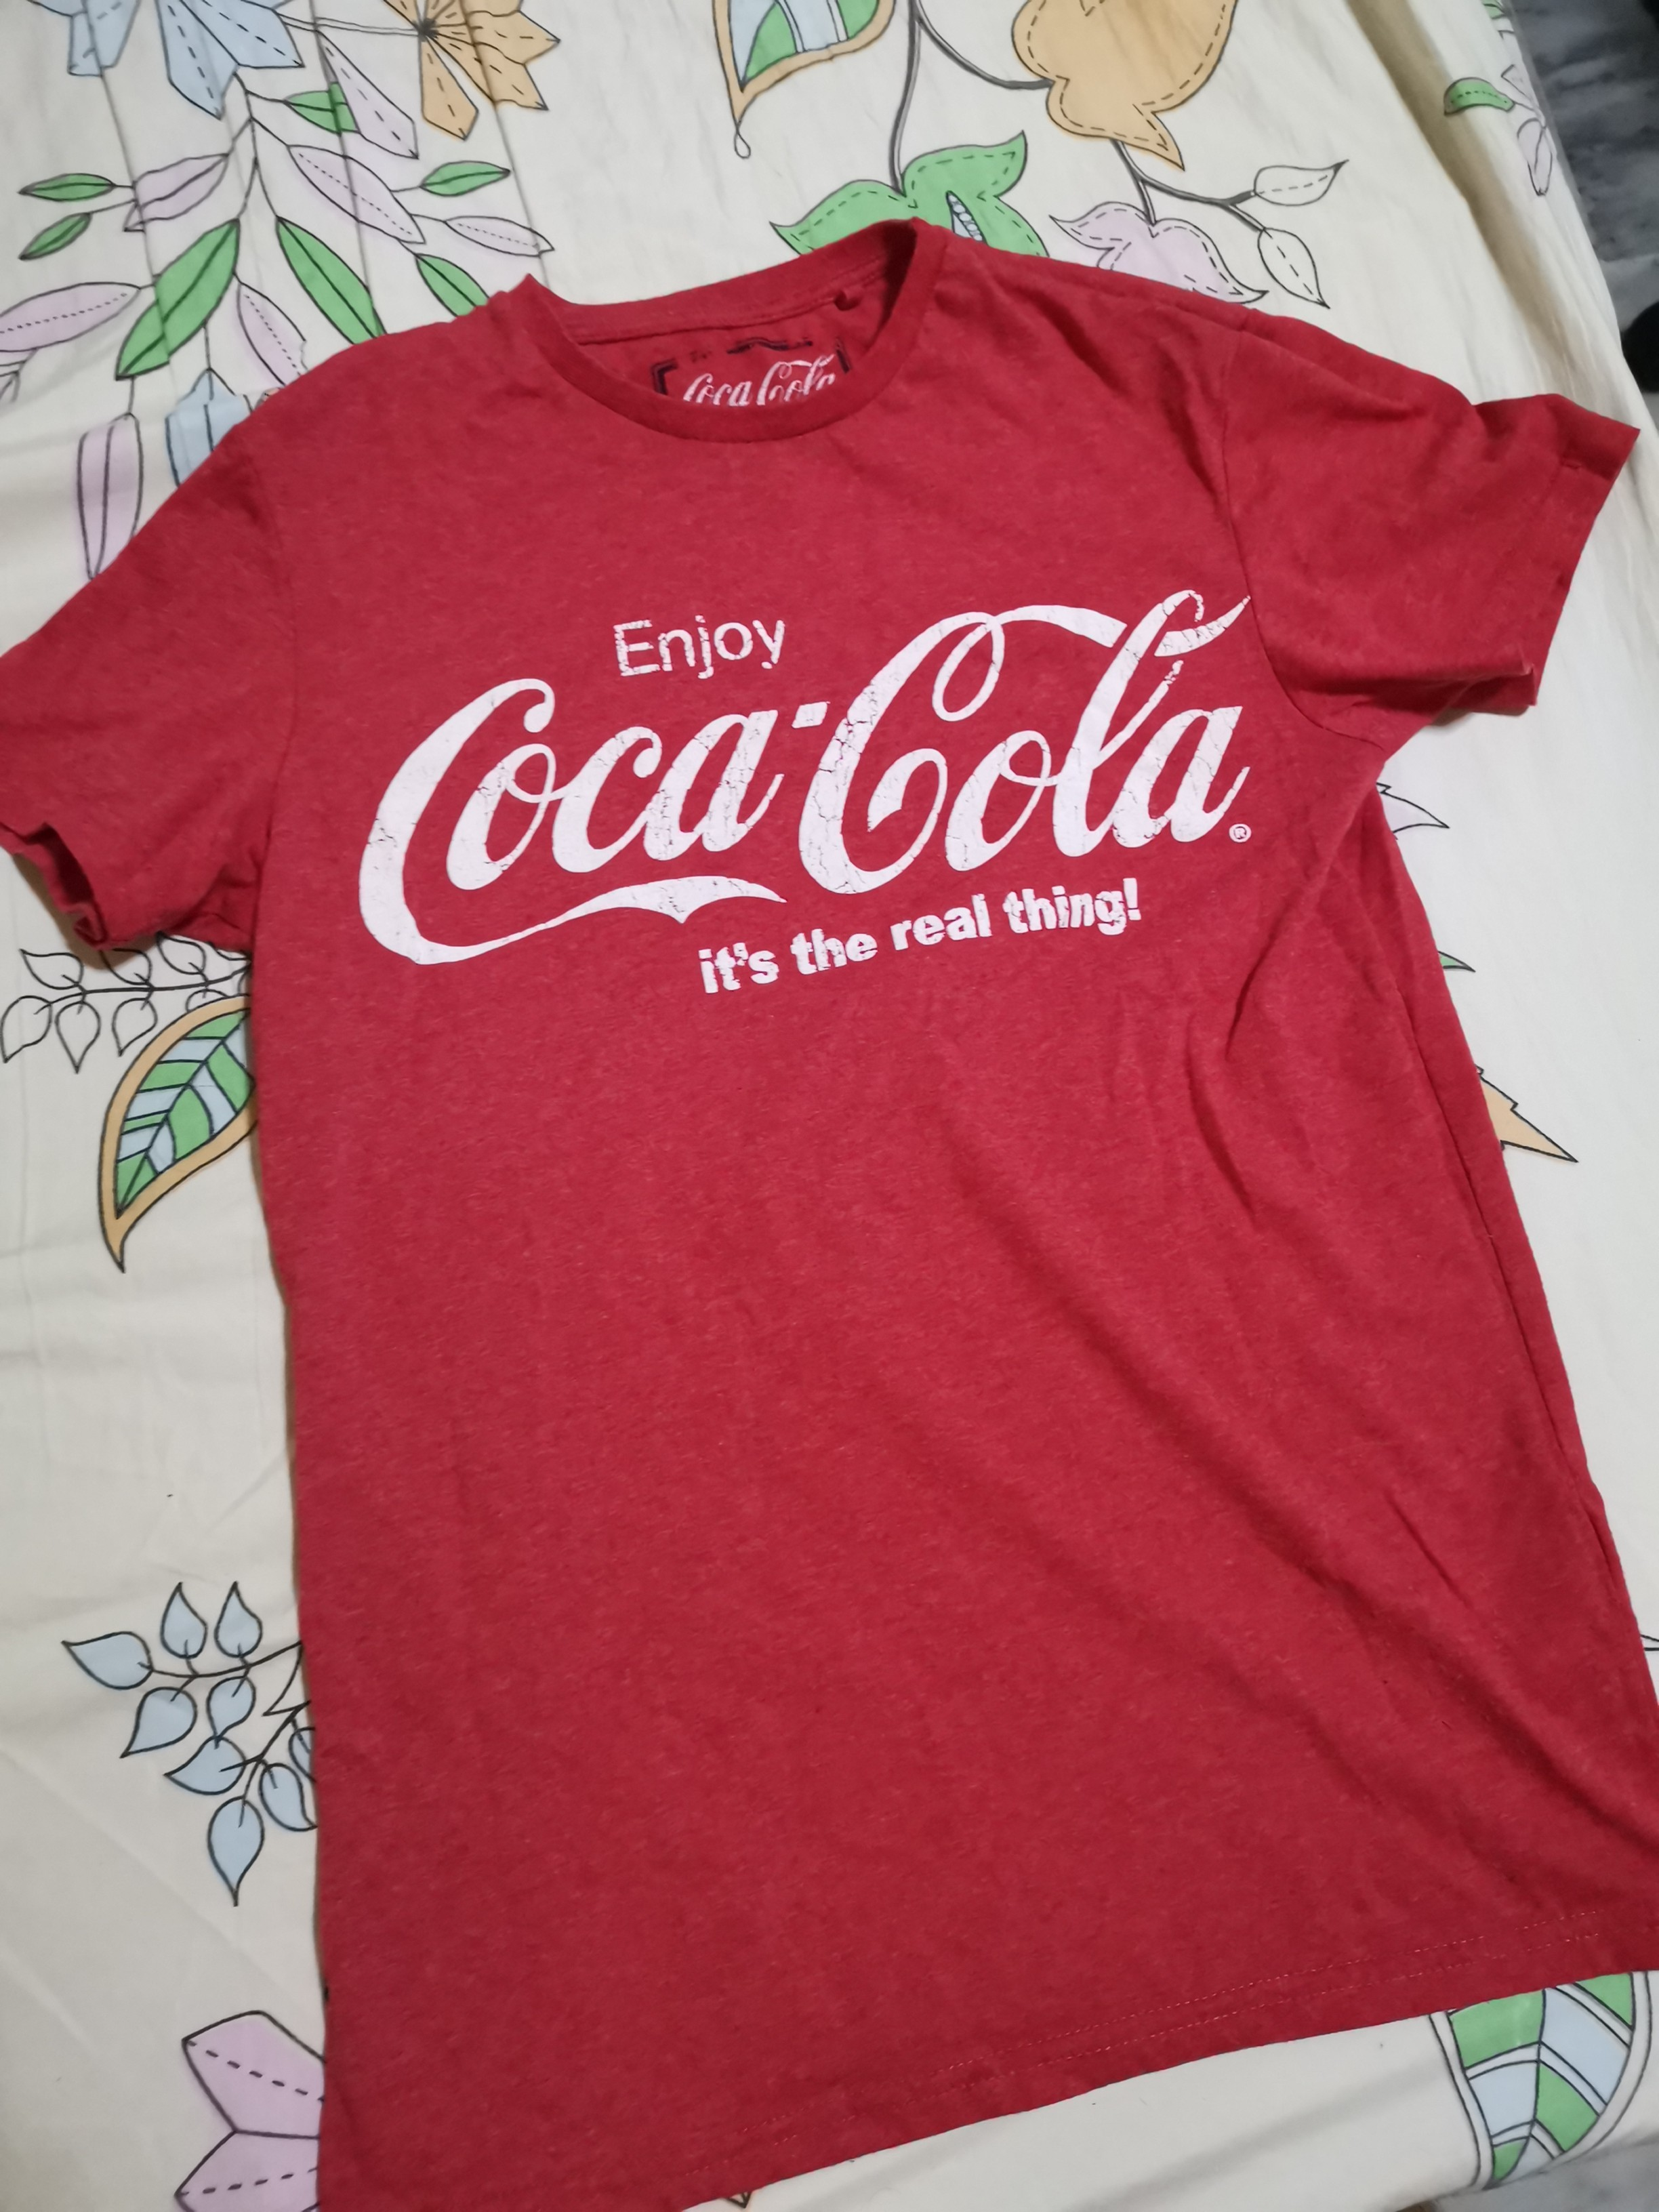 Coca Cola T Shirt Roblox Coca Cola T Shirt Women S Fashion Clothes Tops On Carousell